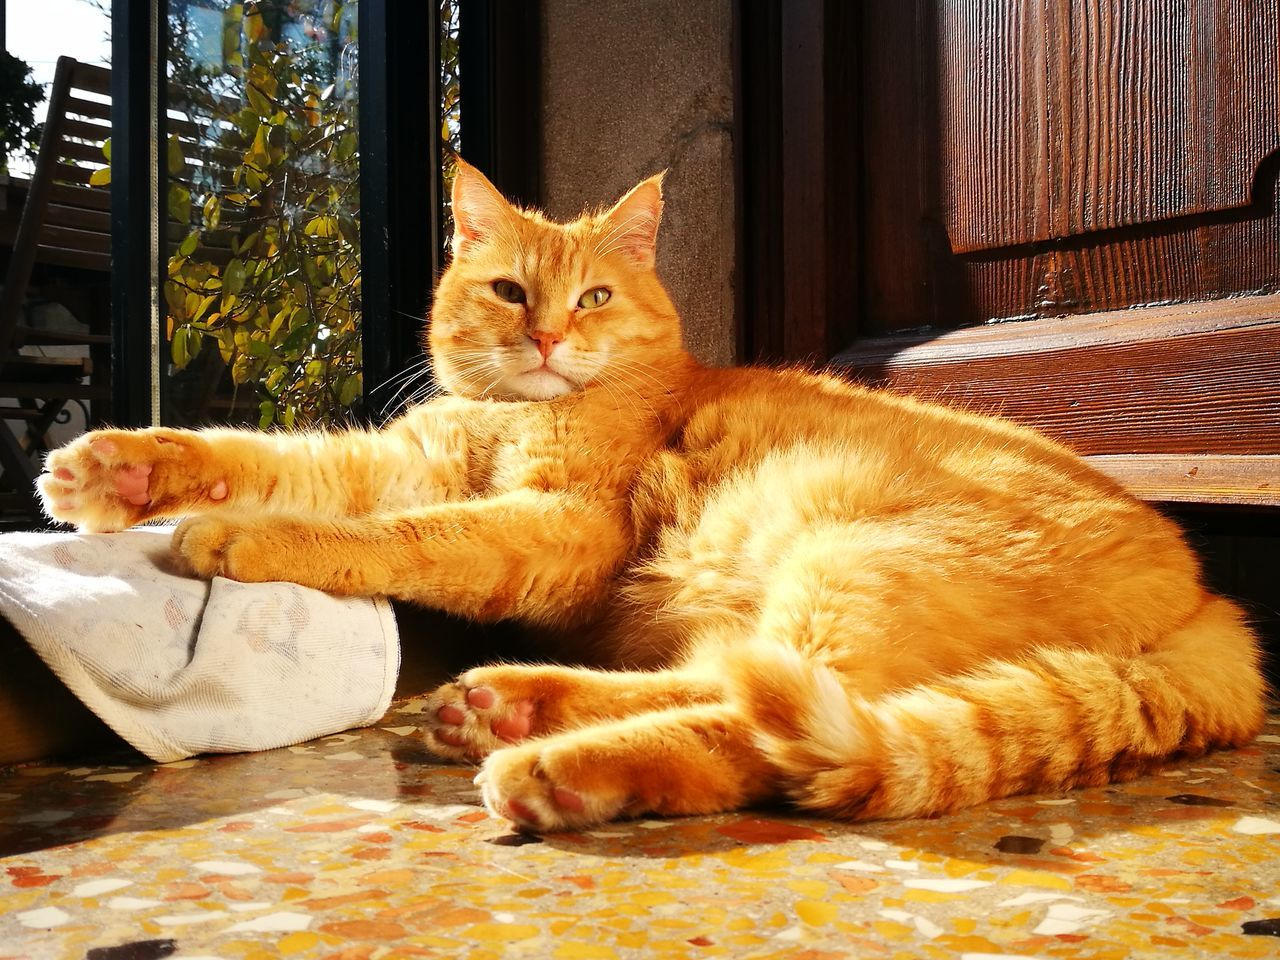 domestic cat, pets, domestic animals, animal themes, feline, cat, mammal, one animal, whisker, sitting, indoors, ginger cat, no people, looking at camera, relaxation, full length, day, portrait